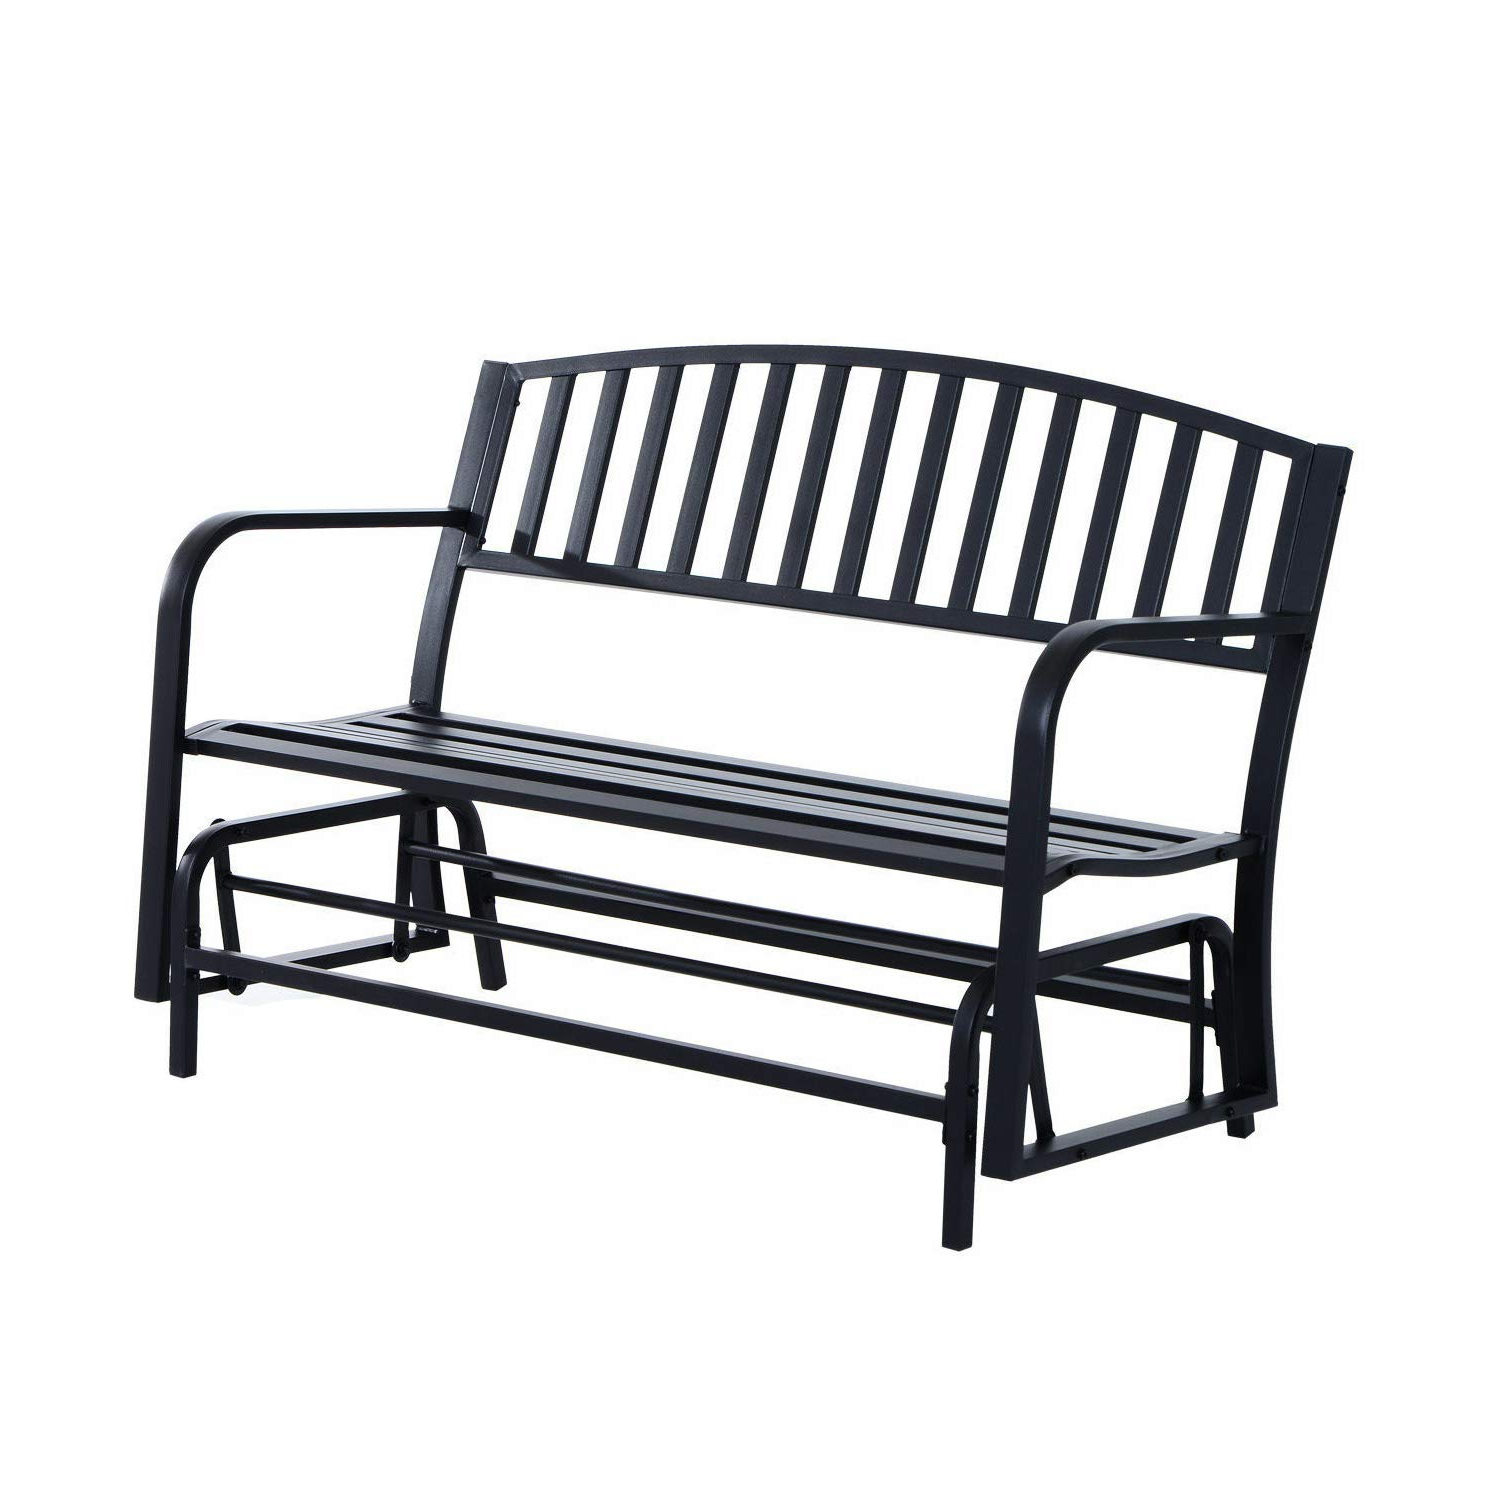 Most Current Amazon : Black Patio Swing Glider Bench For 2 Persons Throughout Steel Patio Swing Glider Benches (Gallery 4 of 30)